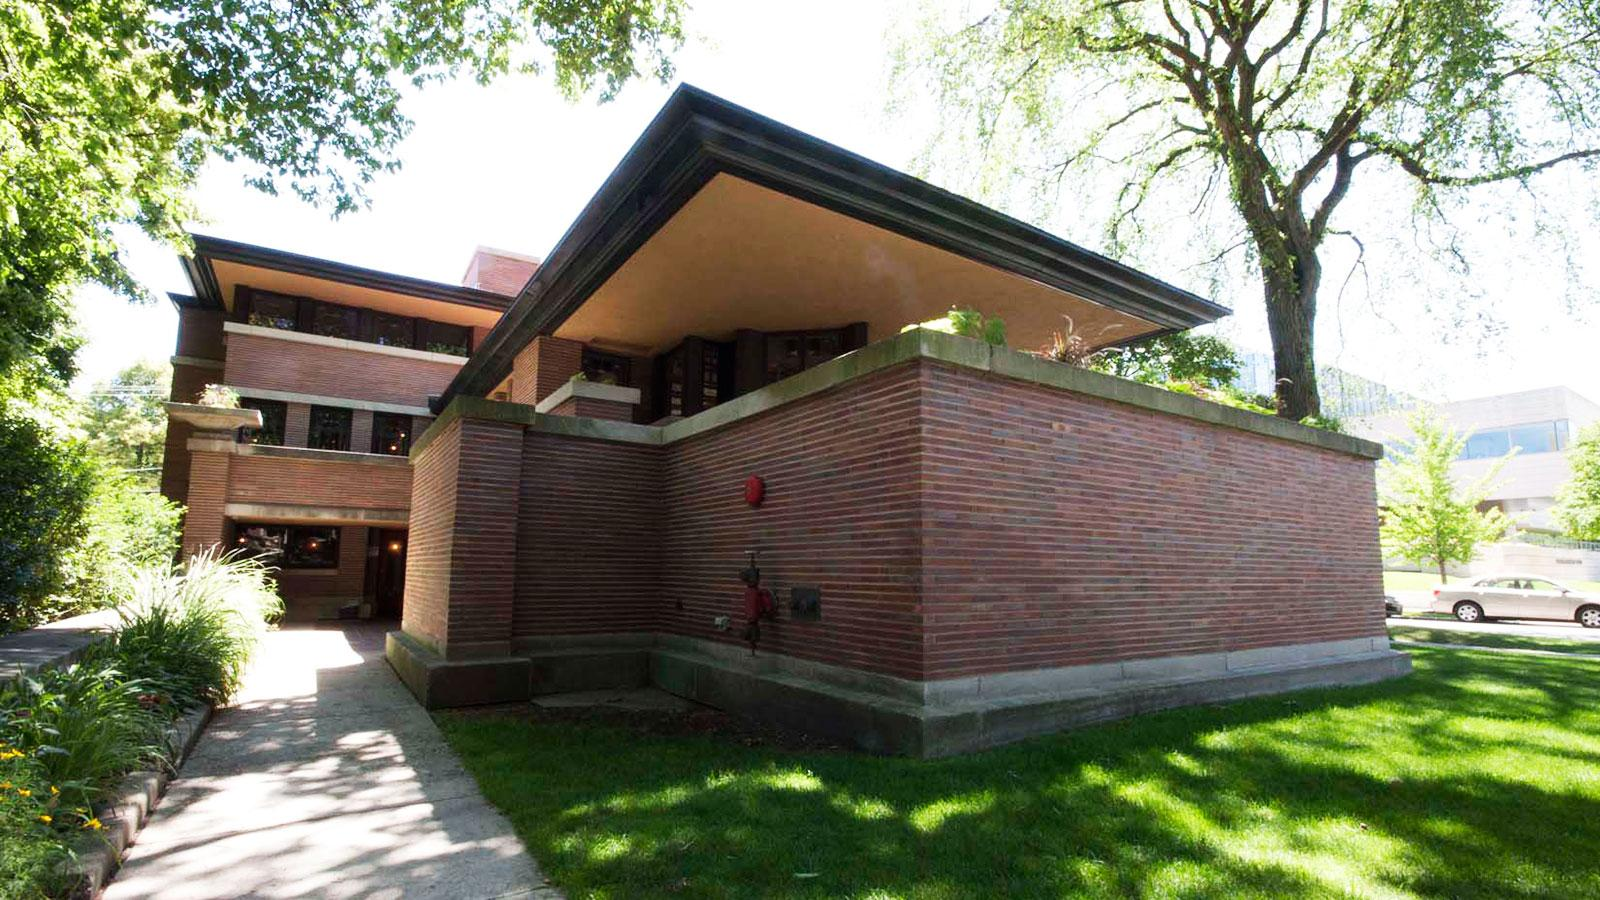 Robie House | Ten Buildings That Changed America | WTTW Chicago